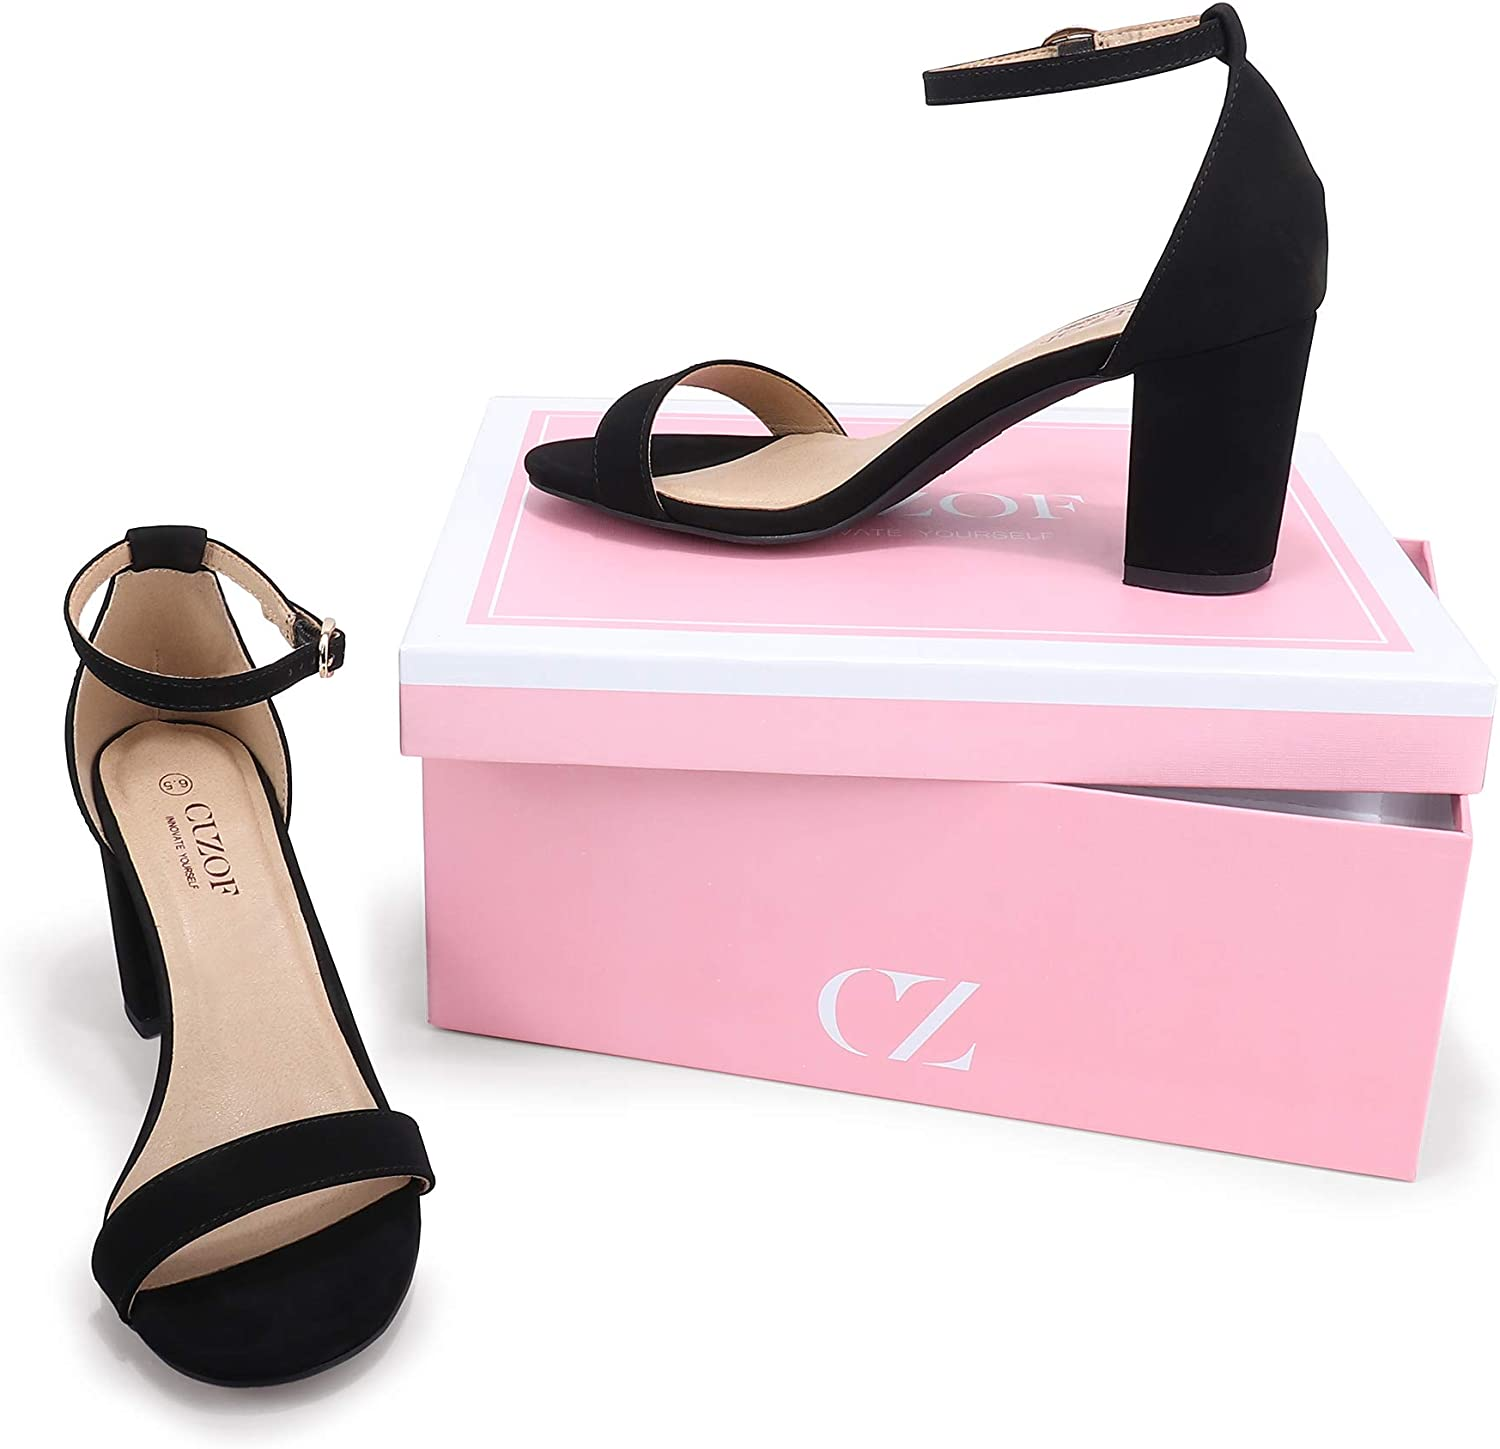 CZ CUZOF Womens Block Chunky Heels Sandals 3 Inch Open Toe Ankle Strap Wedding Party Dress Pump Shoes